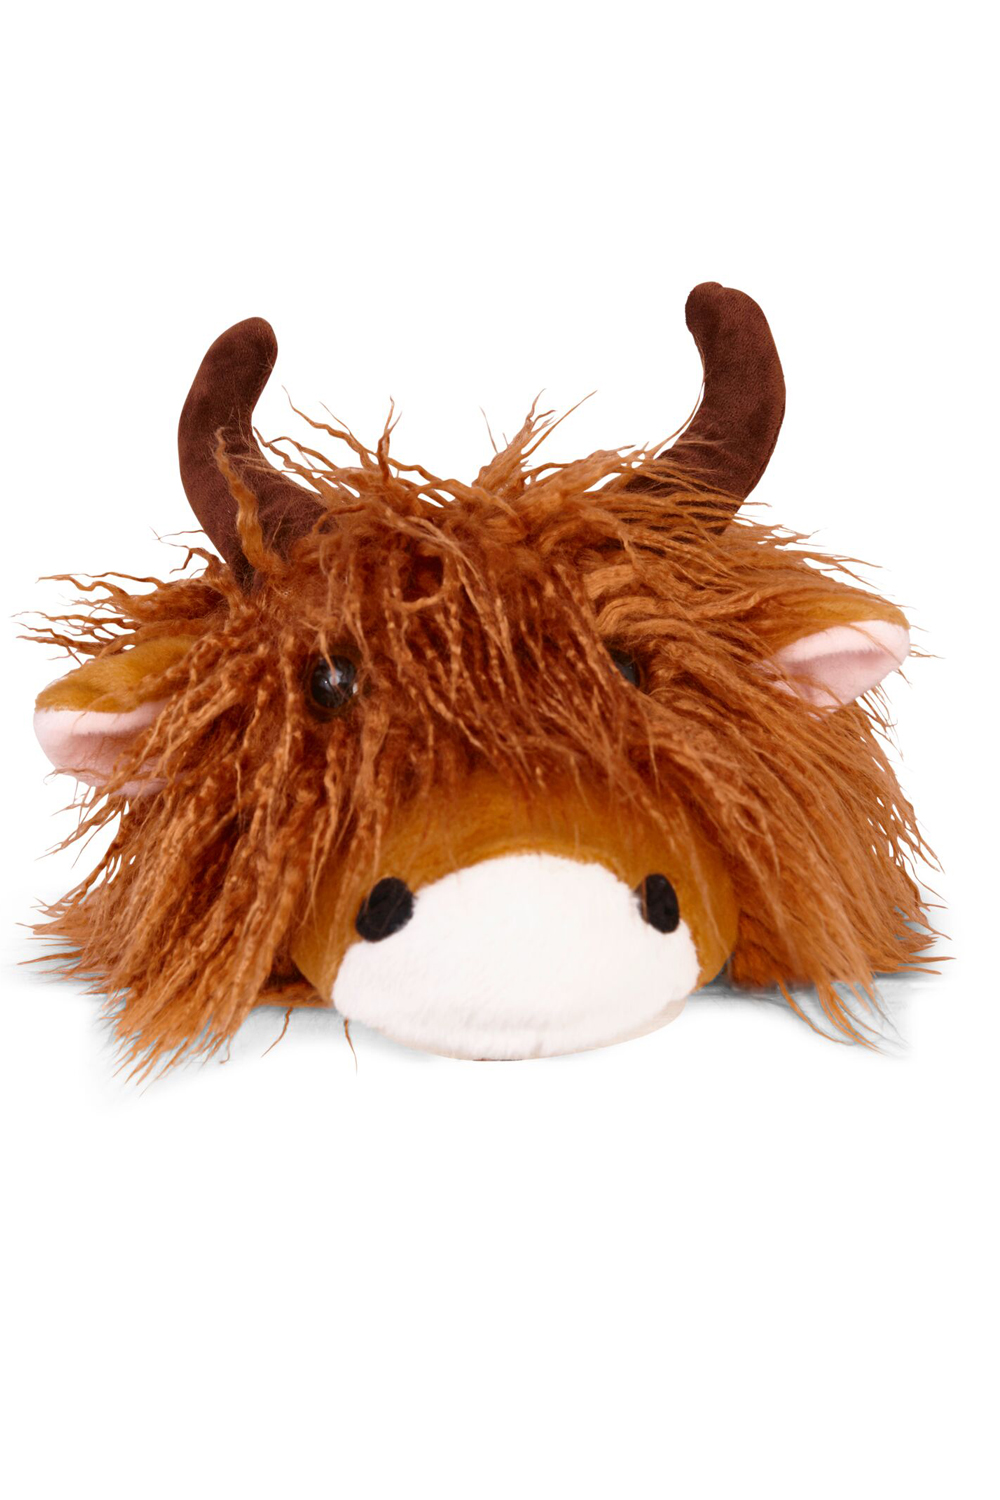 Loungeable-Mens-Novelty-3D-Highland-Cow-Design-Slip-on-Warm-Soft-Plush-Slippers thumbnail 3